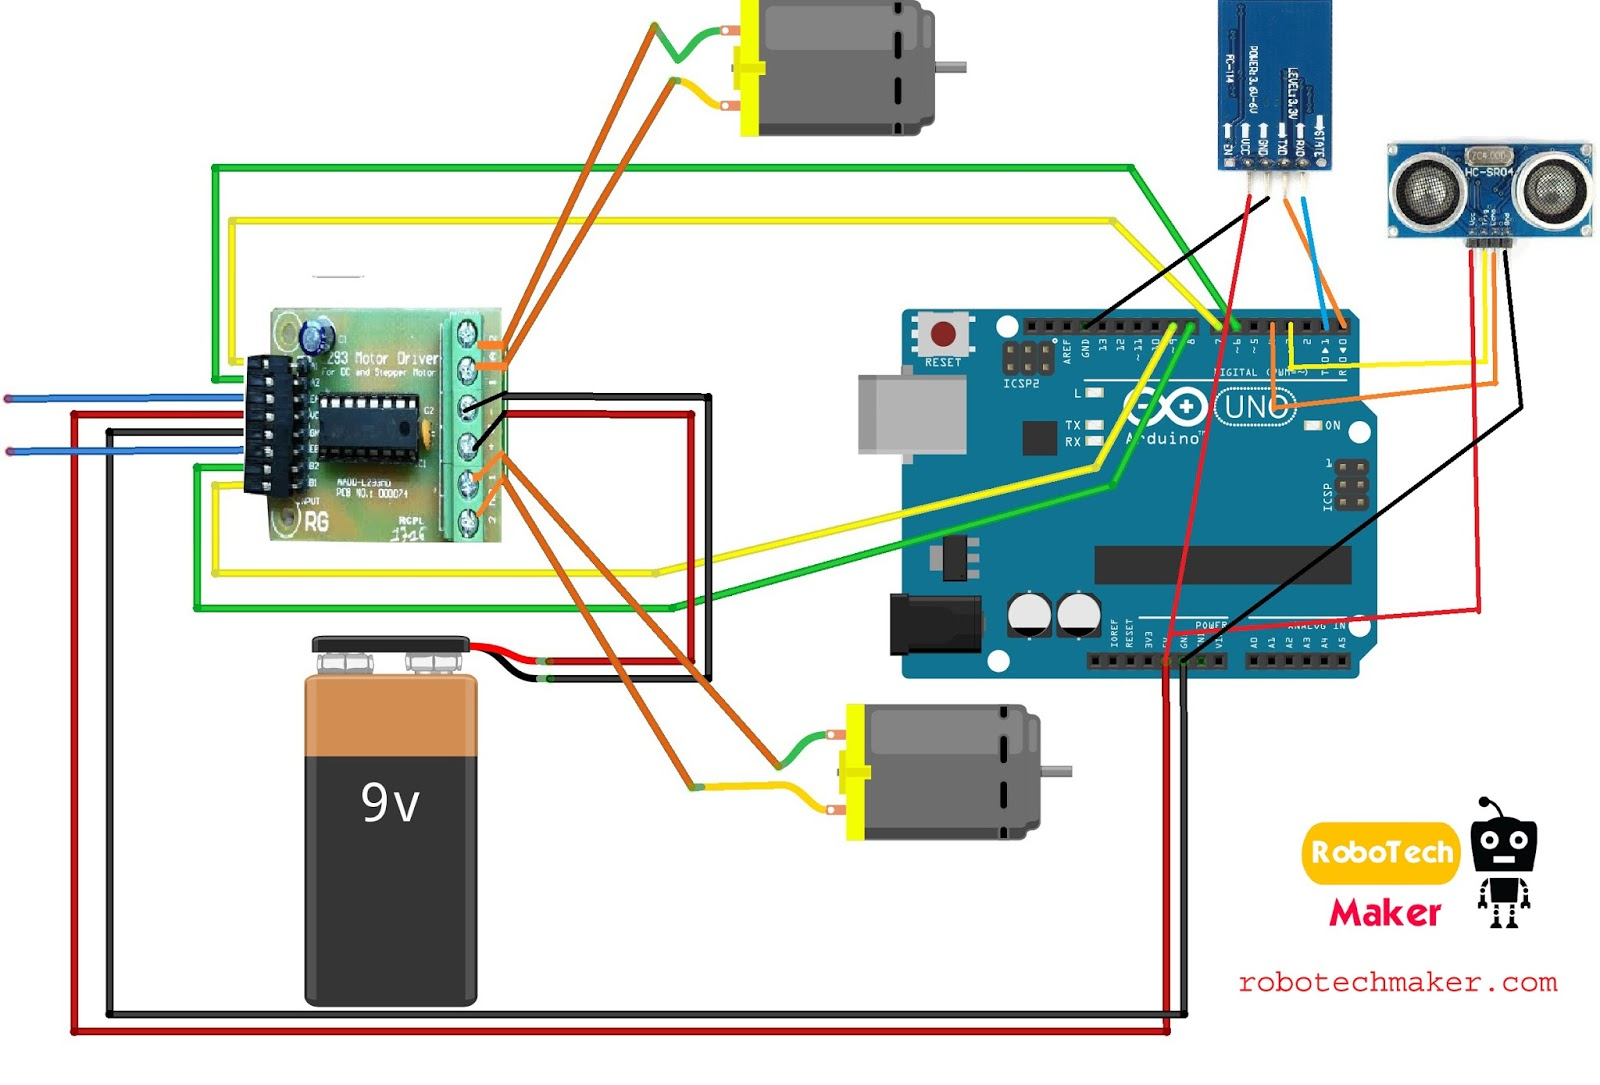 Robotech Maker Arduino Robot Using L293d Or L2998n Motor Controller Pin Diagram Download And Zoom In For Clear View